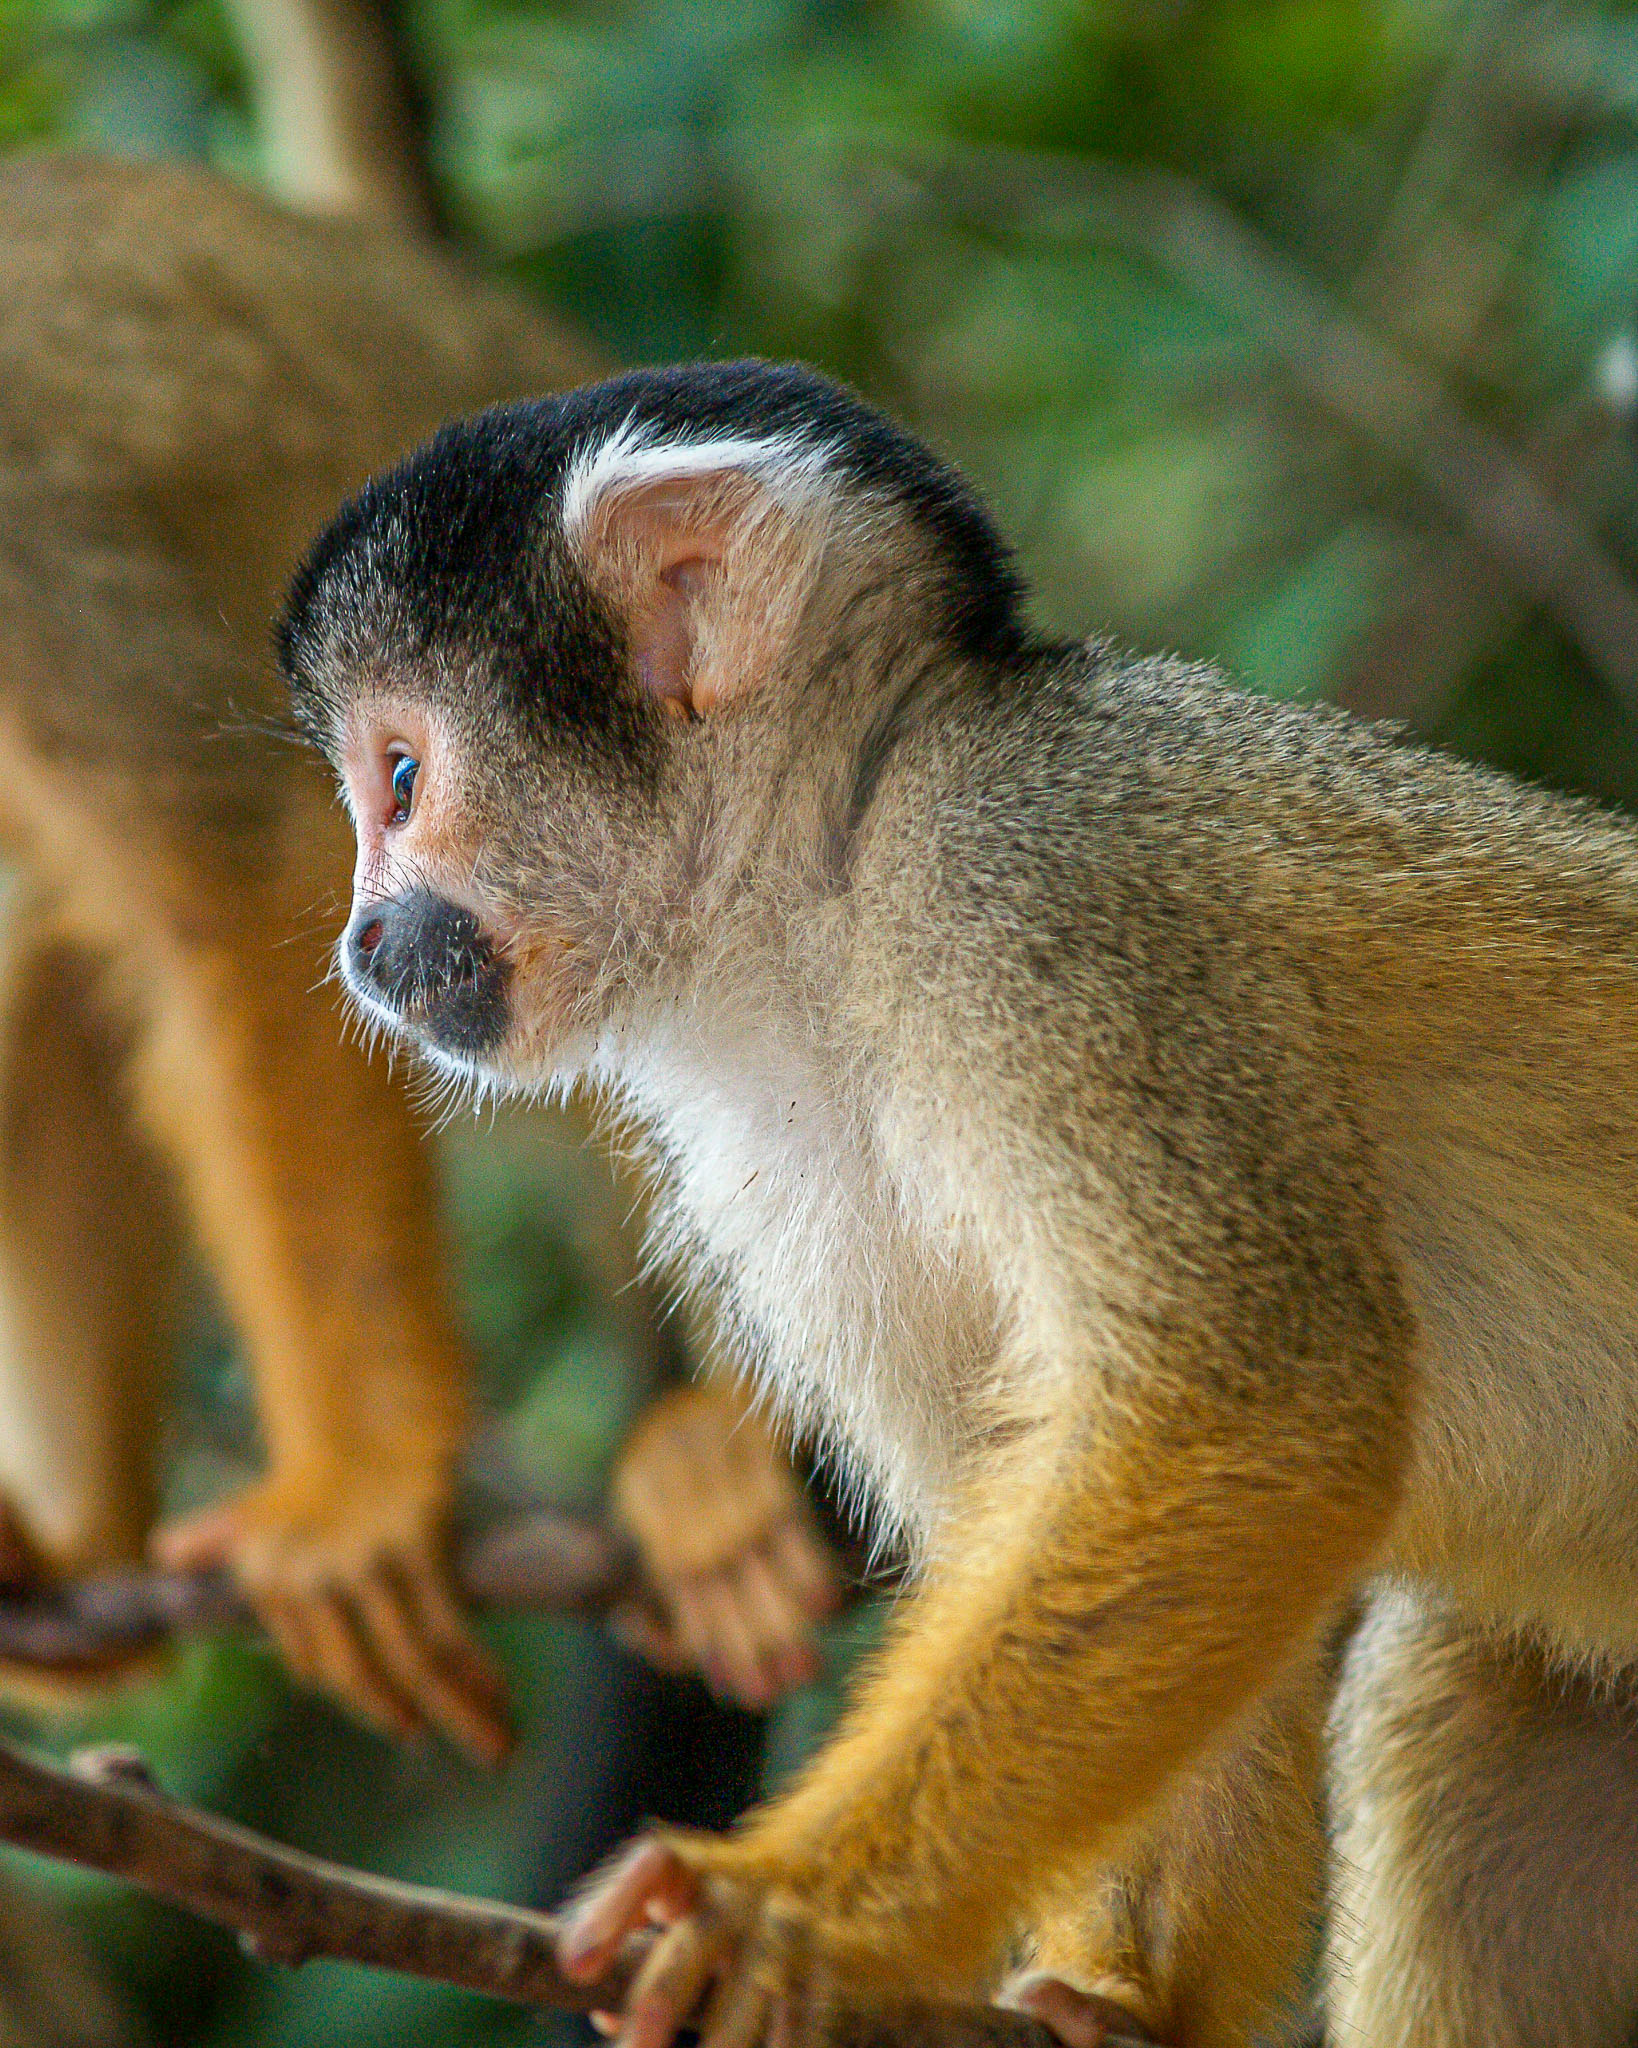 Squirrel Monkeys are common in the jungles and forests around the Amazon basin in the Bolivian Lowlands. However seeing them isn't so easy unless they come to the edges of the forest. This cute troop came to the waters edge while we were heading upstream in a motorised canoe.